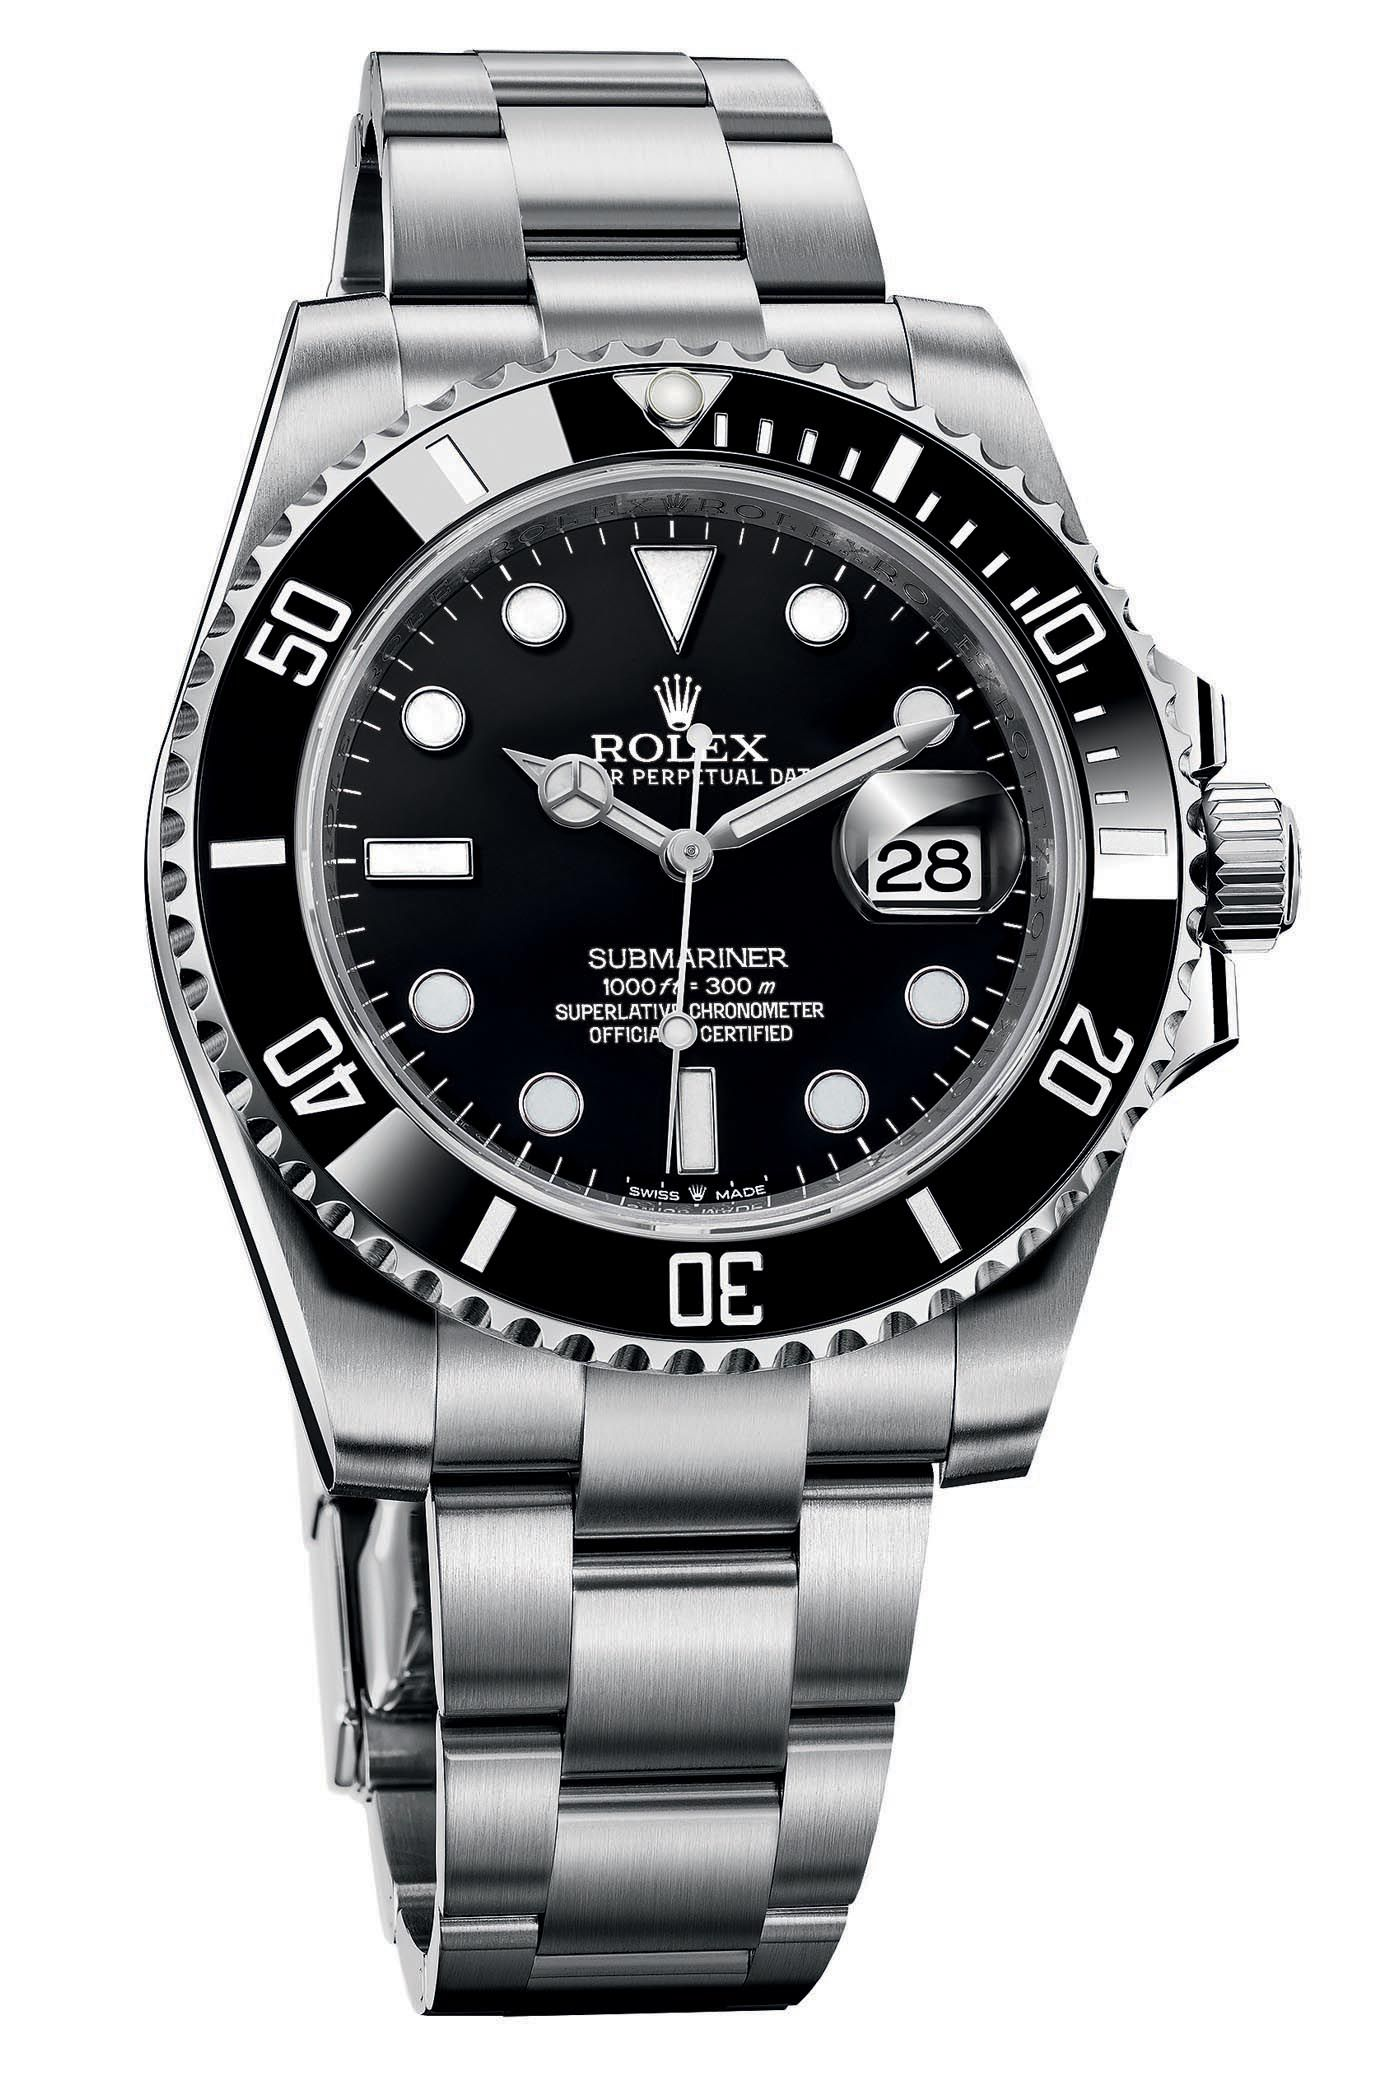 Rolex Baselworld 2019 Rolex Predictions 2019 Rolex Novelties 2019 Rolex Oyster Perpetual Dive Watches Rolex Watches